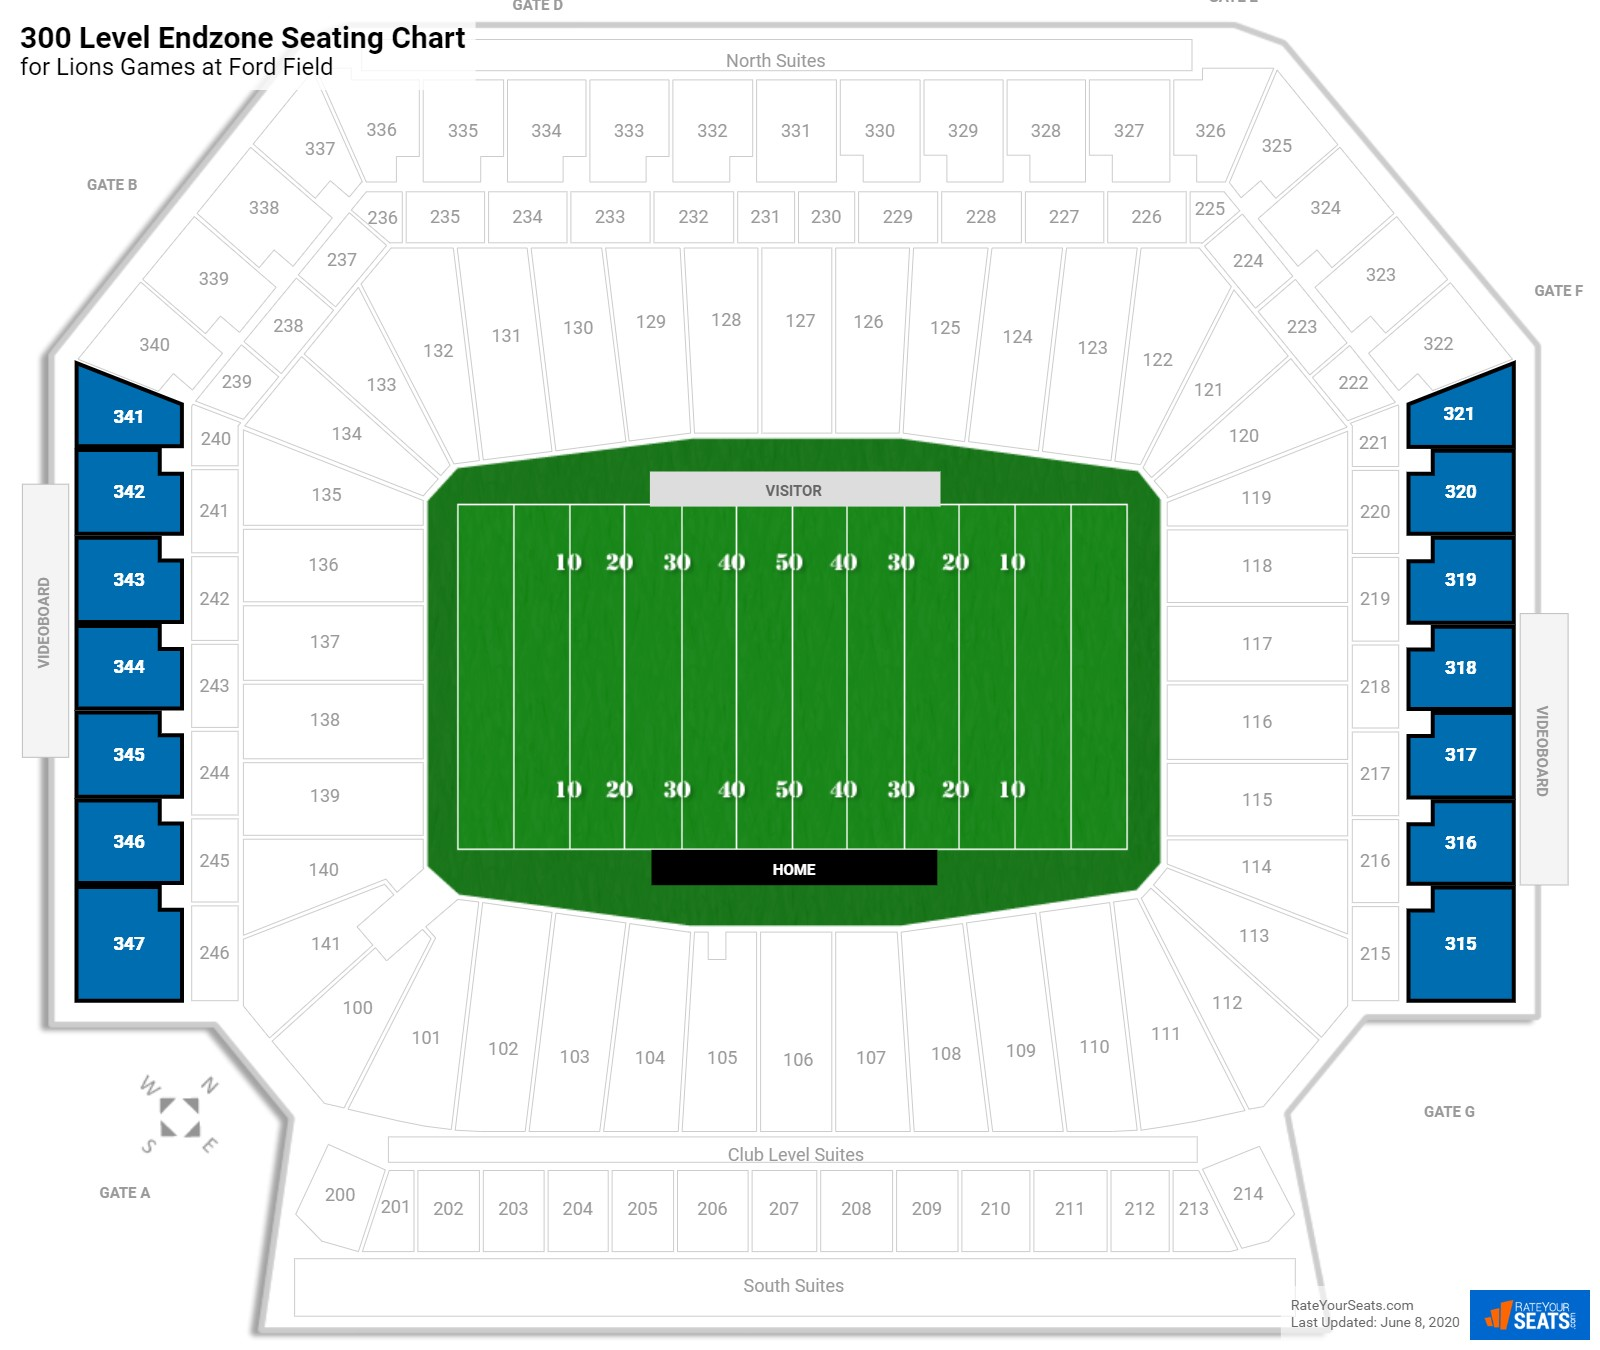 Ford Field 300 Level Endzone seating chart